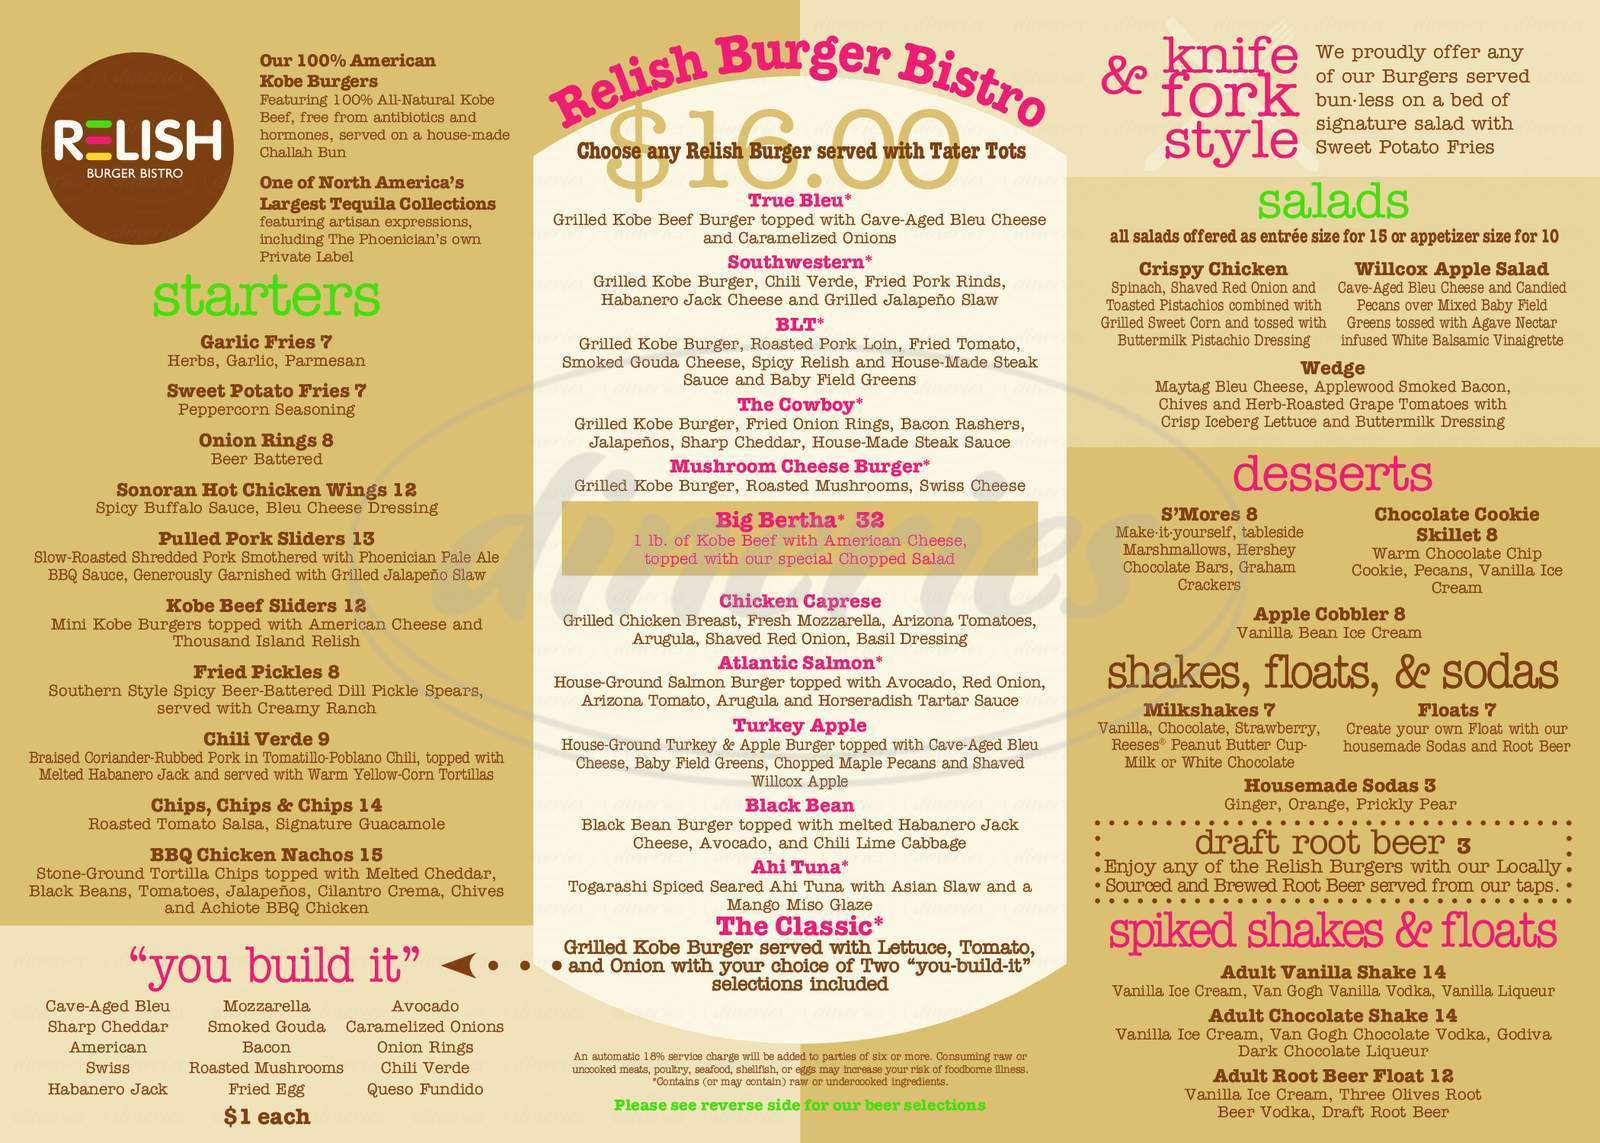 menu for Relish Burger Bistro